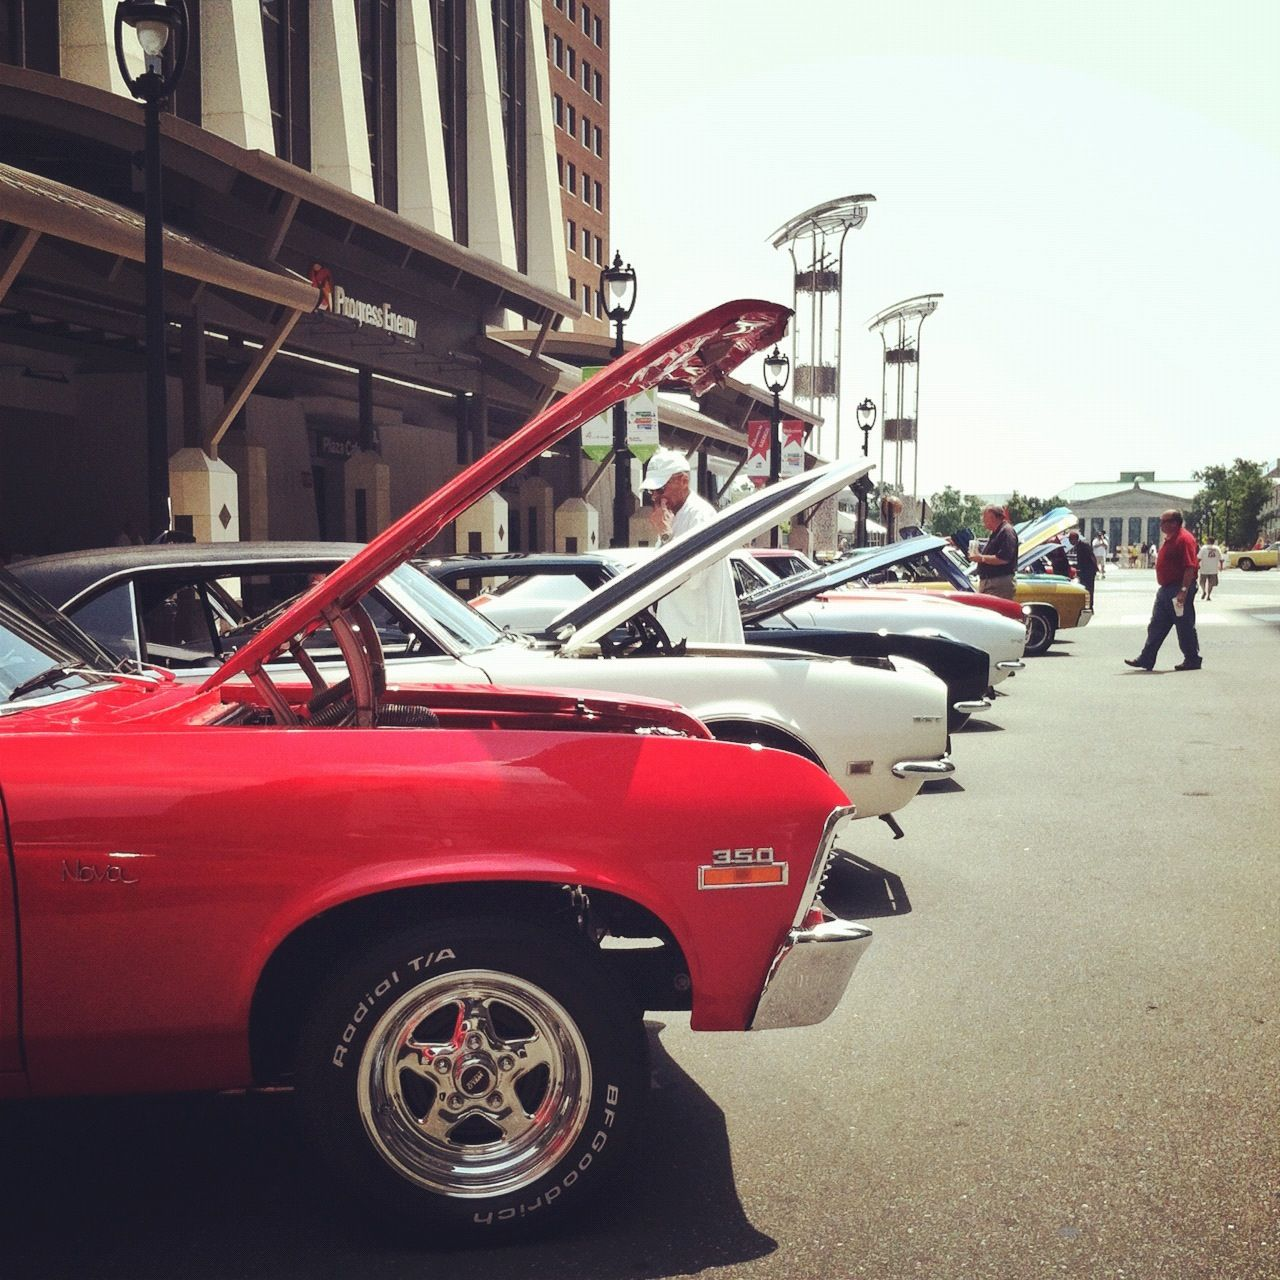 Raleigh Car Show >> Carolina Classics At The Capital Car Show In Downtown Raleigh This